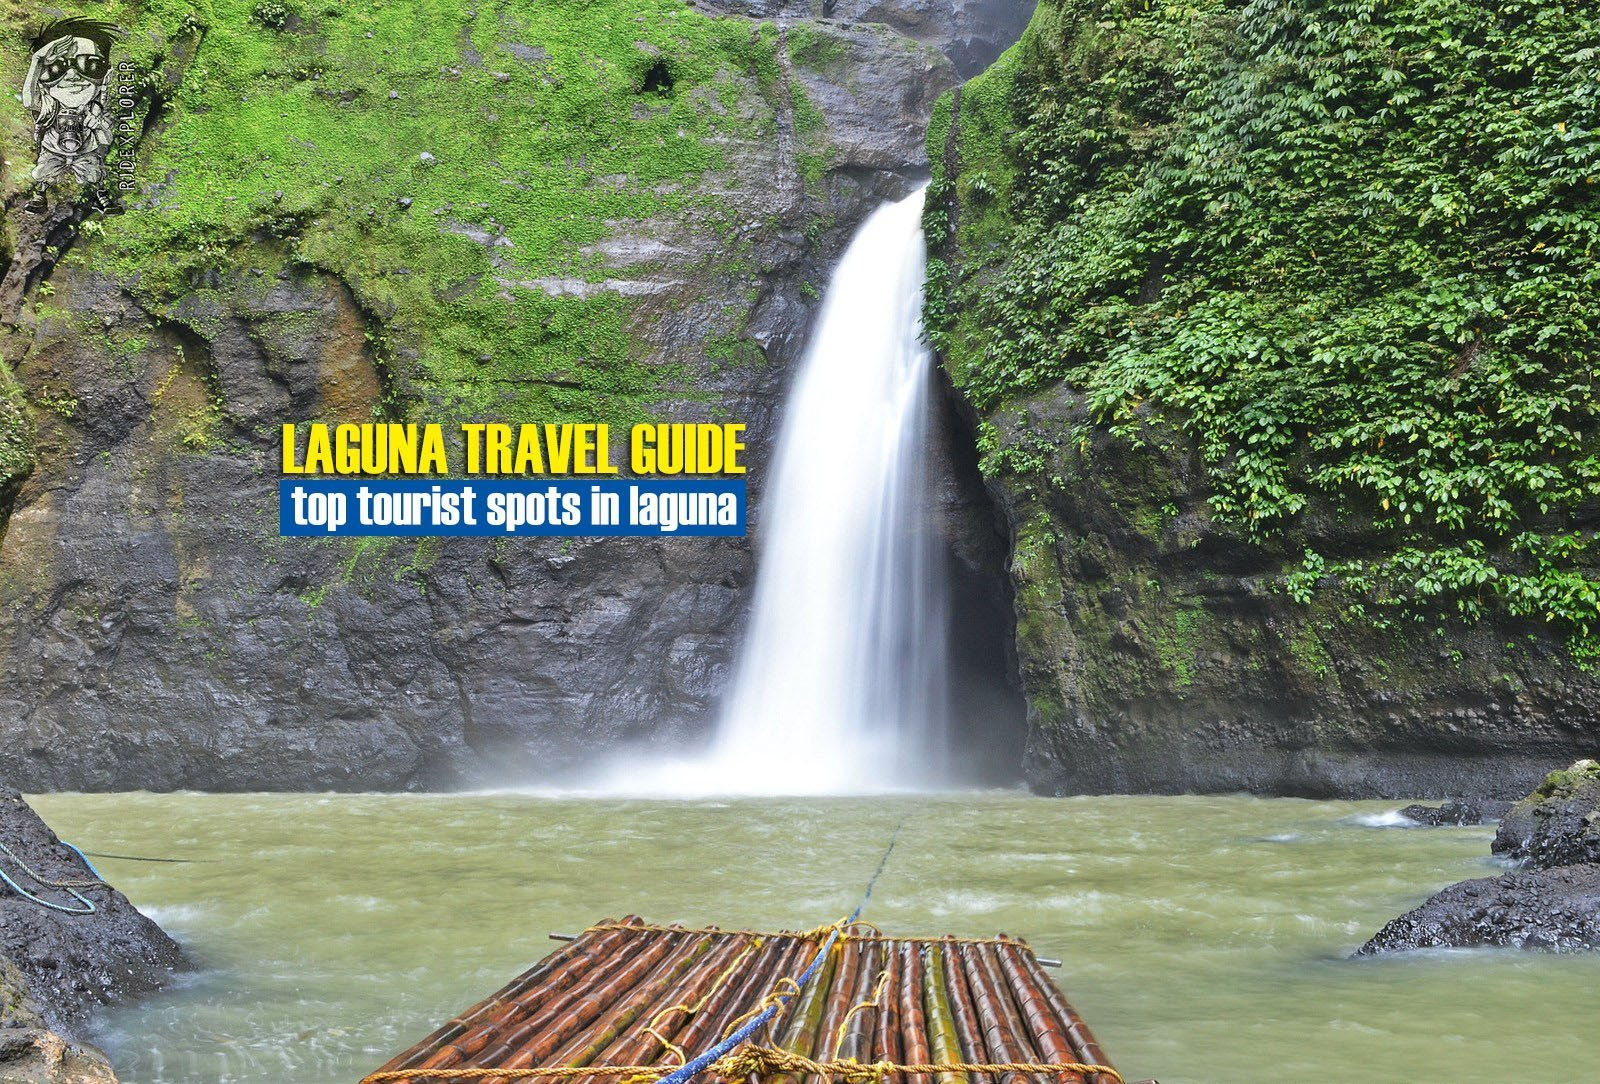 Top Tourist Spots in Laguna [And How To Get There]